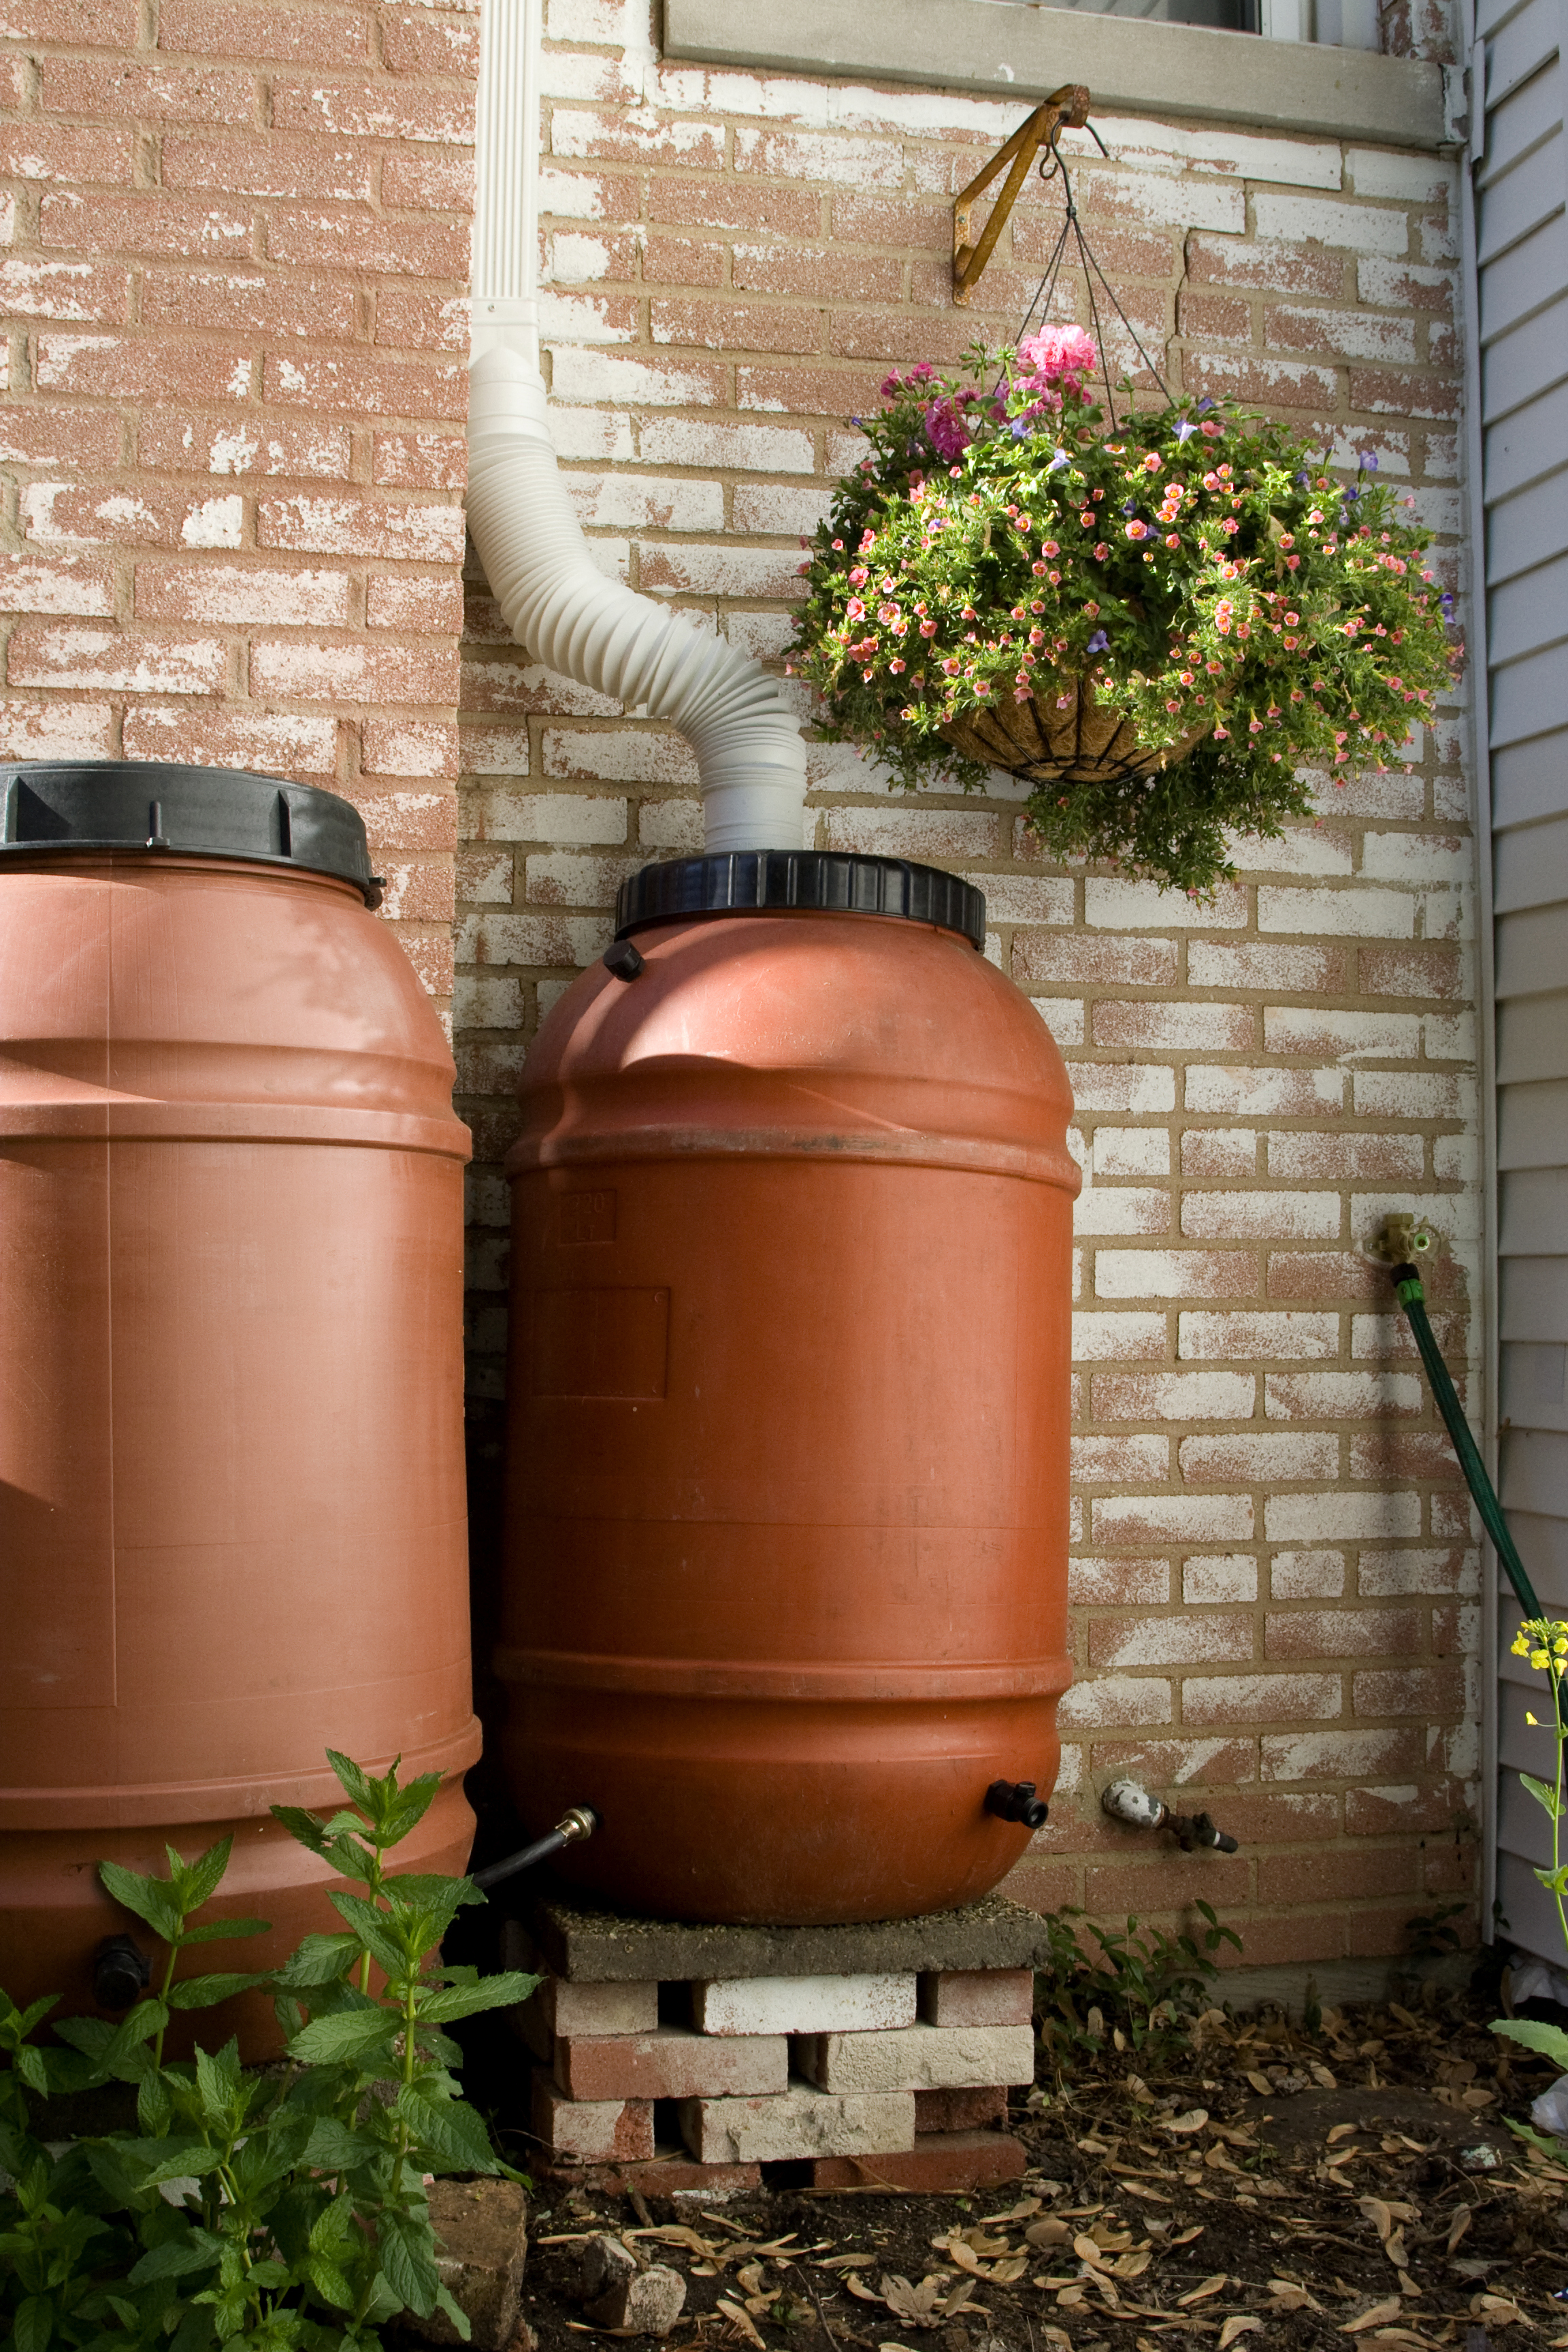 Two linked rain barrels. The rain water collected in these barrels is sufficient to water a small garden